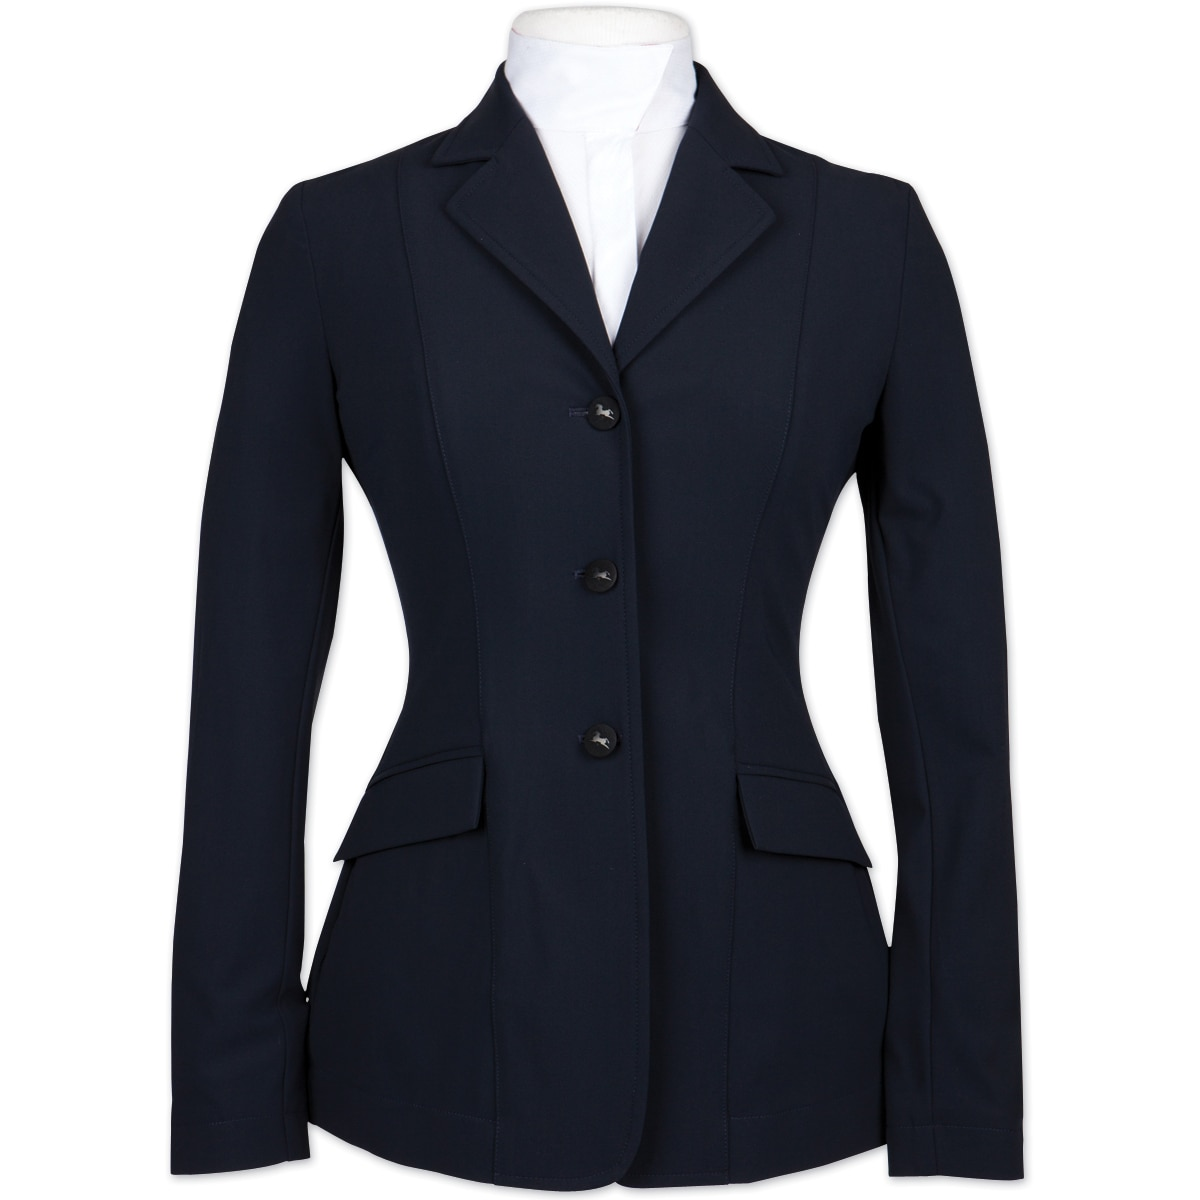 RJ Classics Monterey Orange Label Show Coat